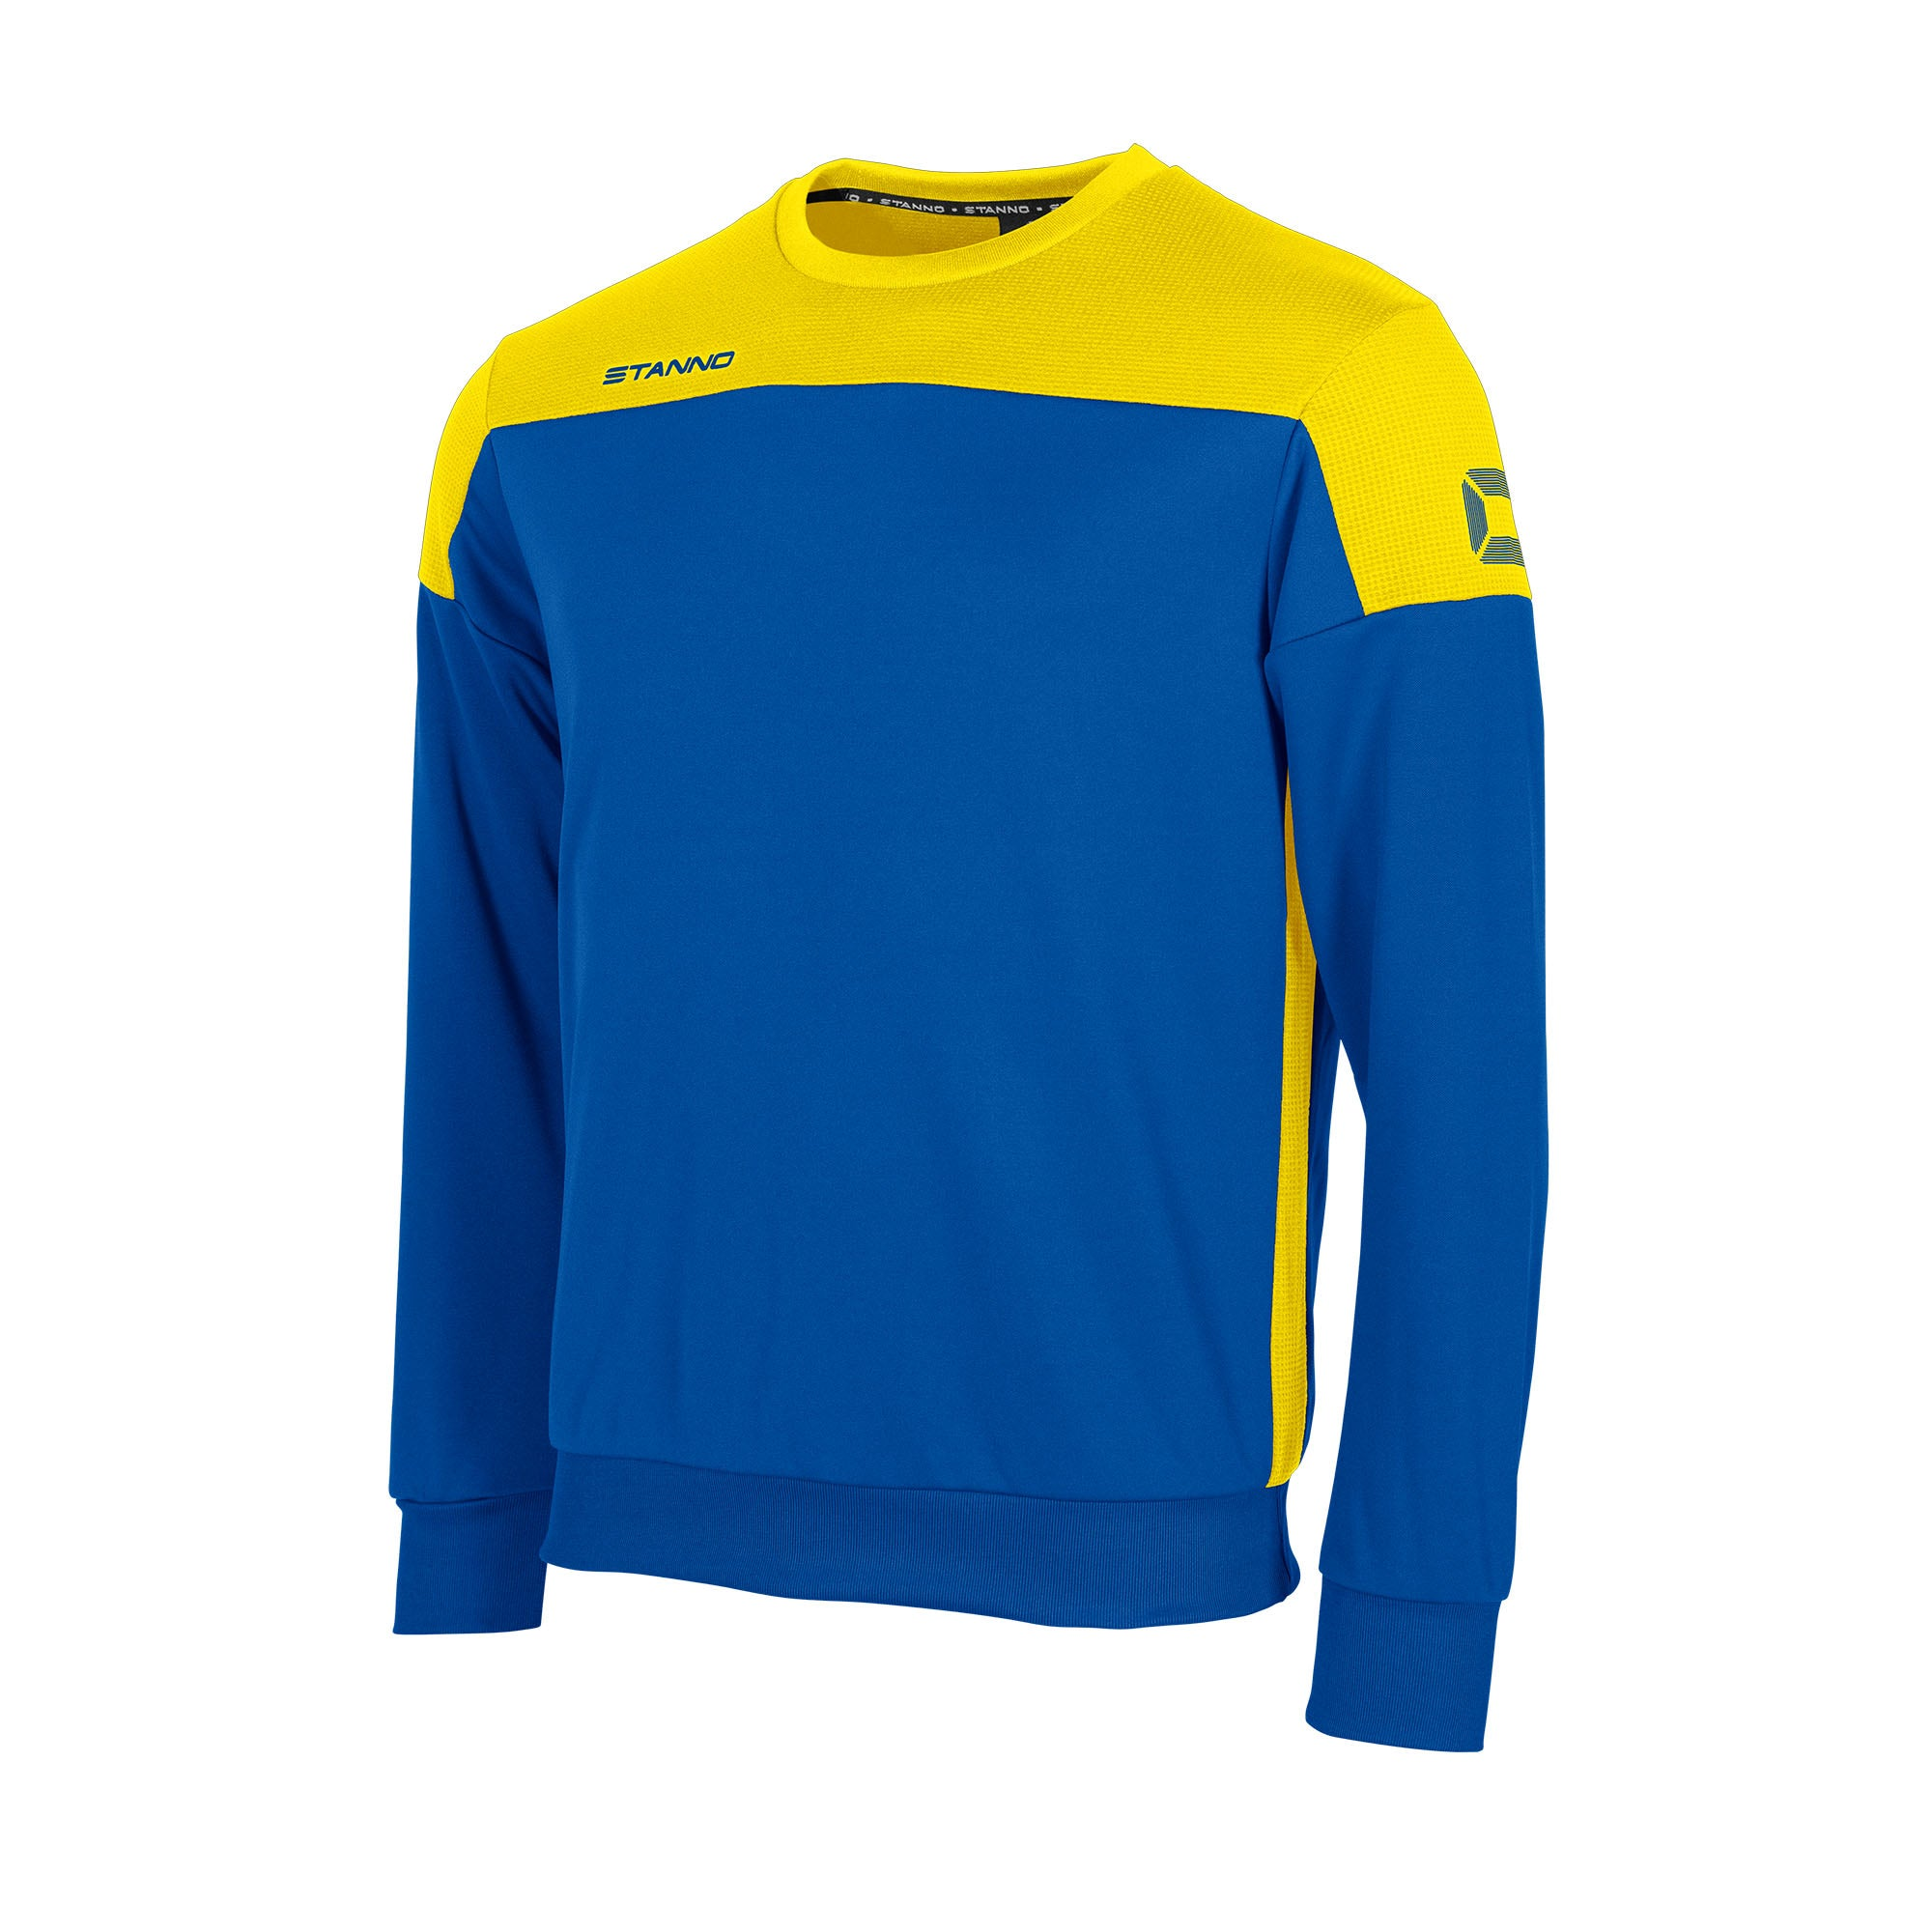 Stanno Pride round neck sweatshirt in royal blue, with mesh contrast yellow shoulder and side panel